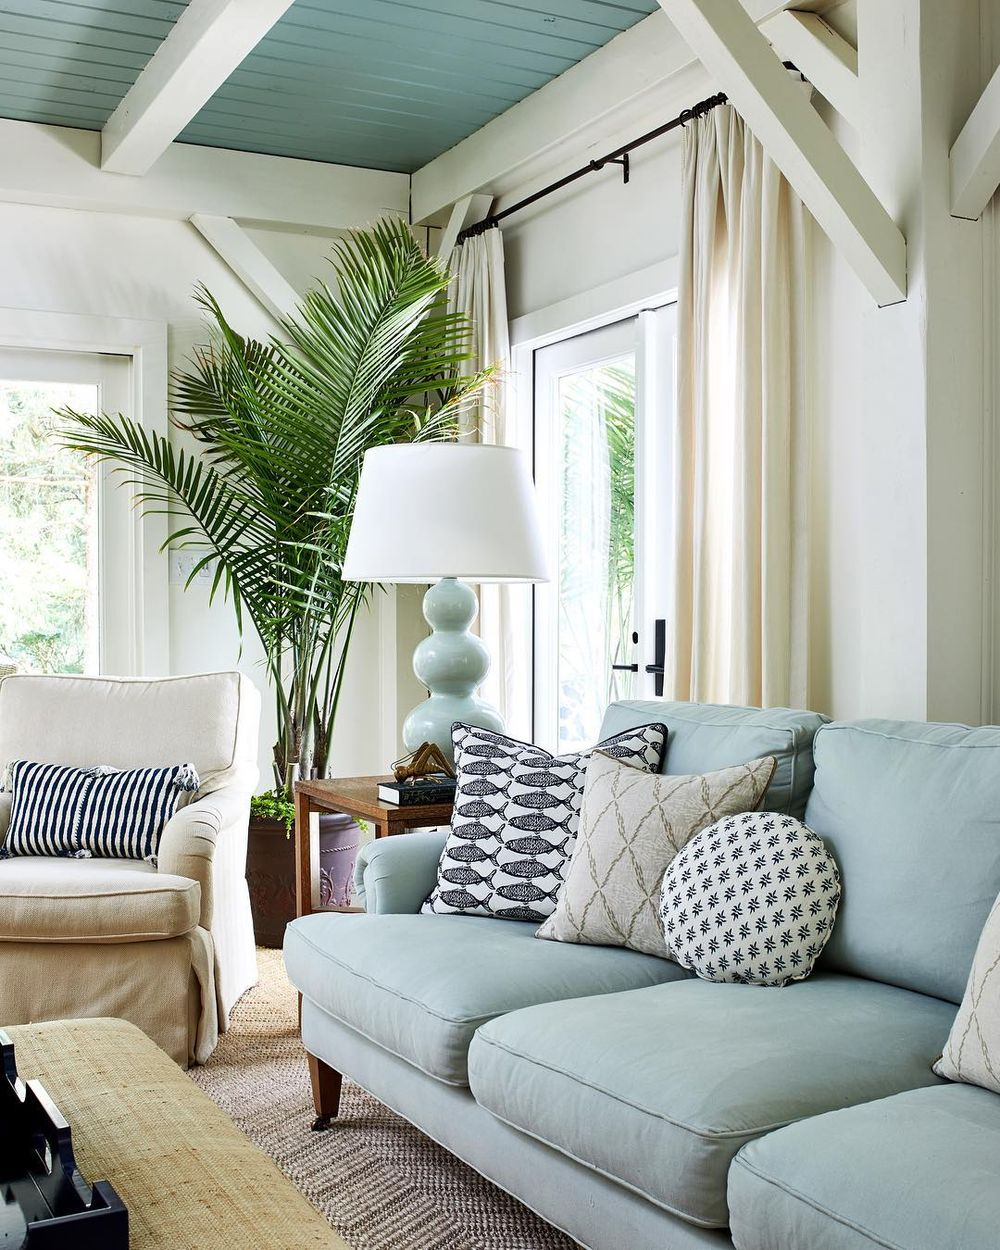 Coastal Sofas - Beach home with blue linen sofa and indoor palm @studiomiel